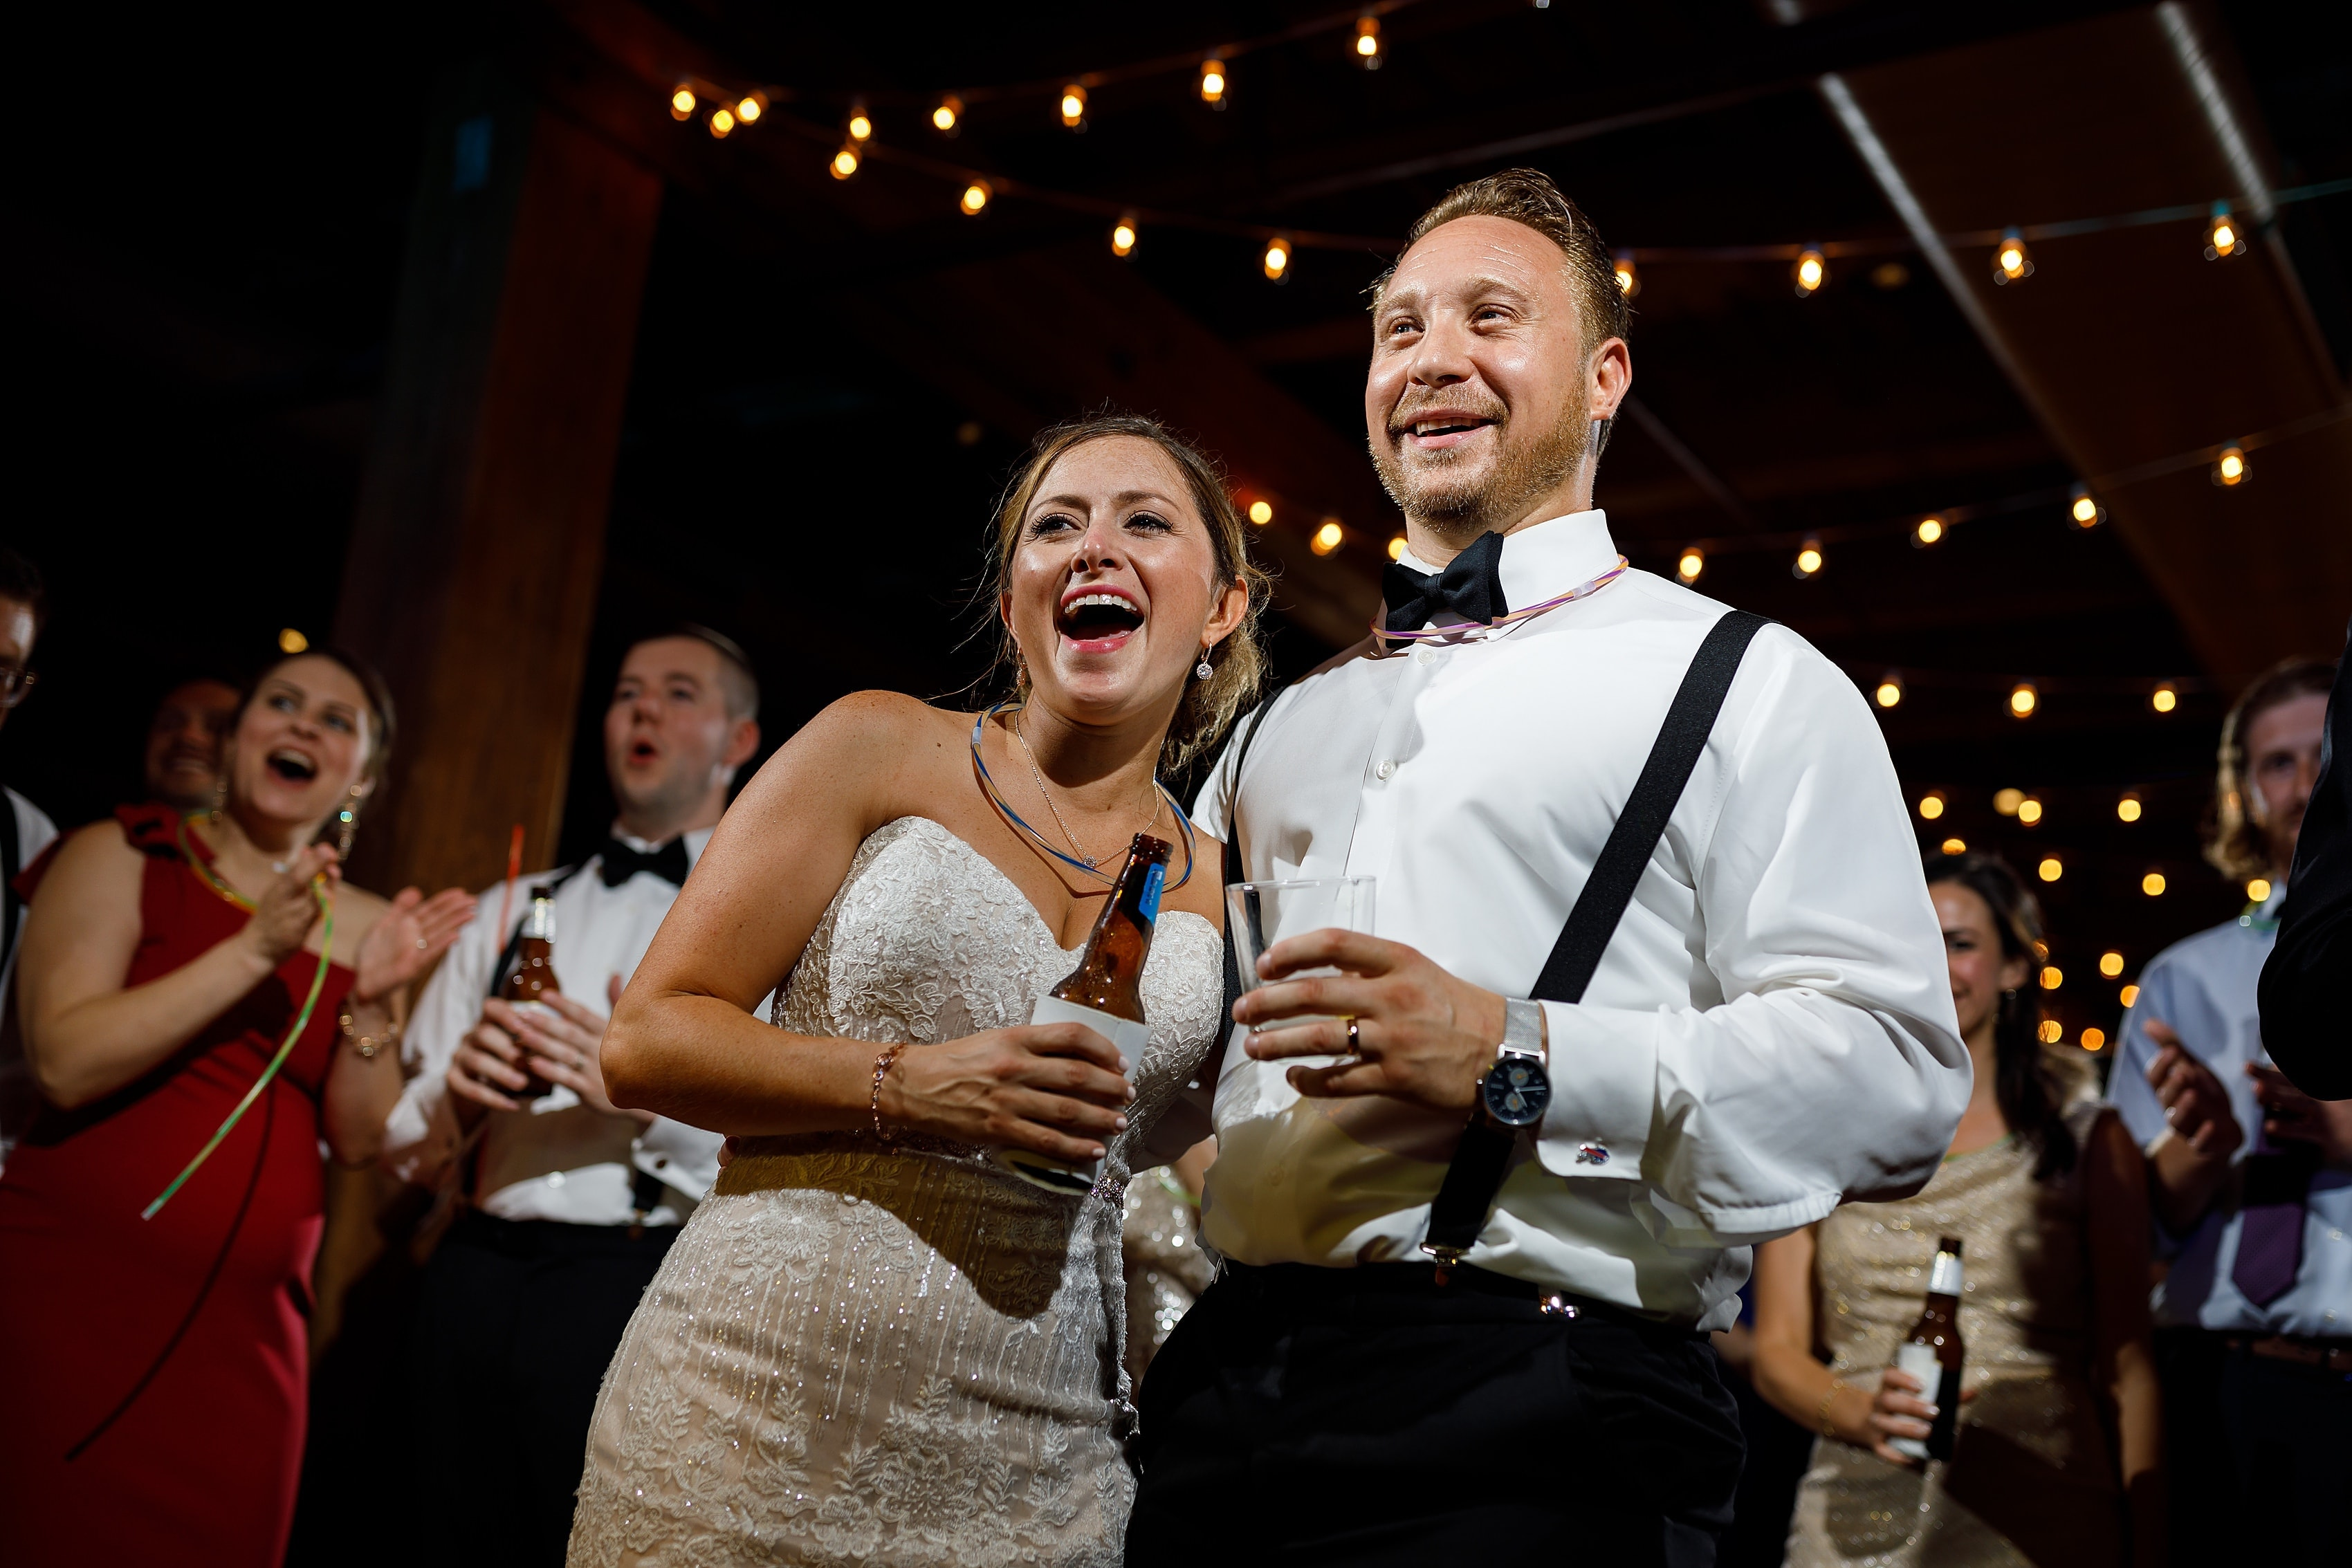 bride and groom react to special piano performance by groomsman during wedding reception at Bridgeport Art Center Sculpture Garden in Chicago